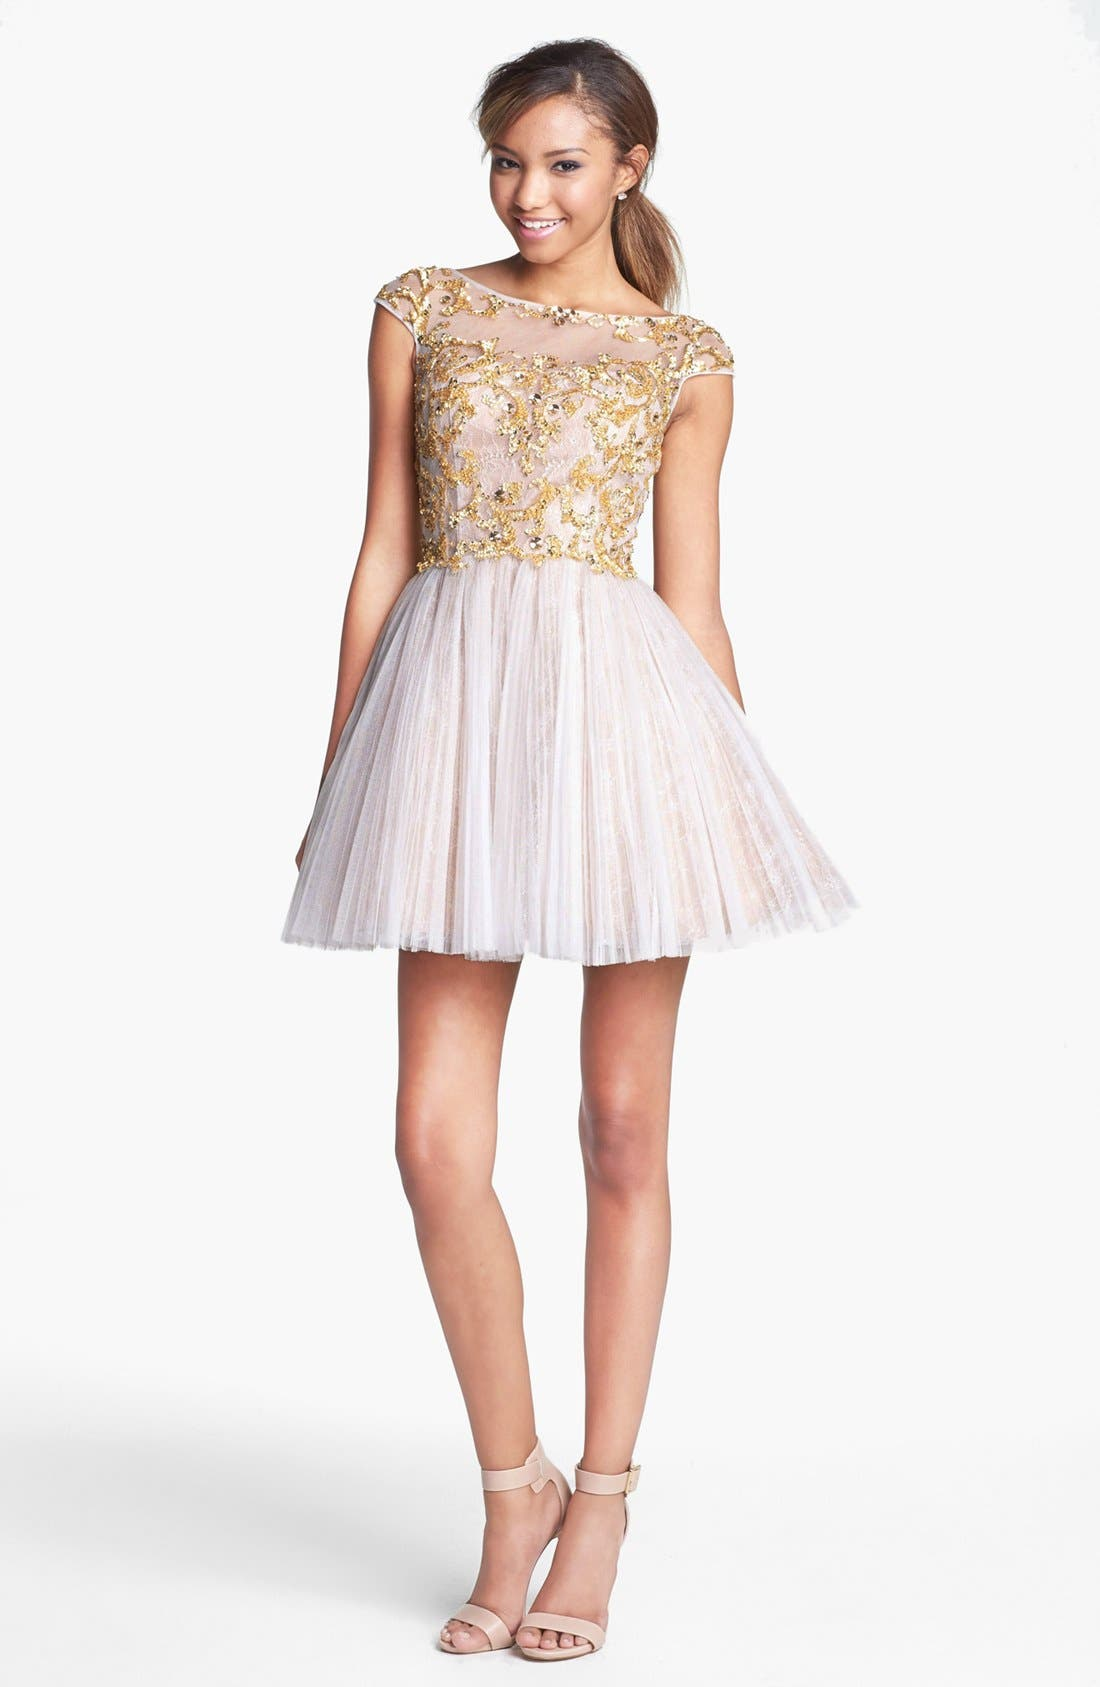 Main Image - Sherri Hill Embellished Lace Fit & Flare Dress